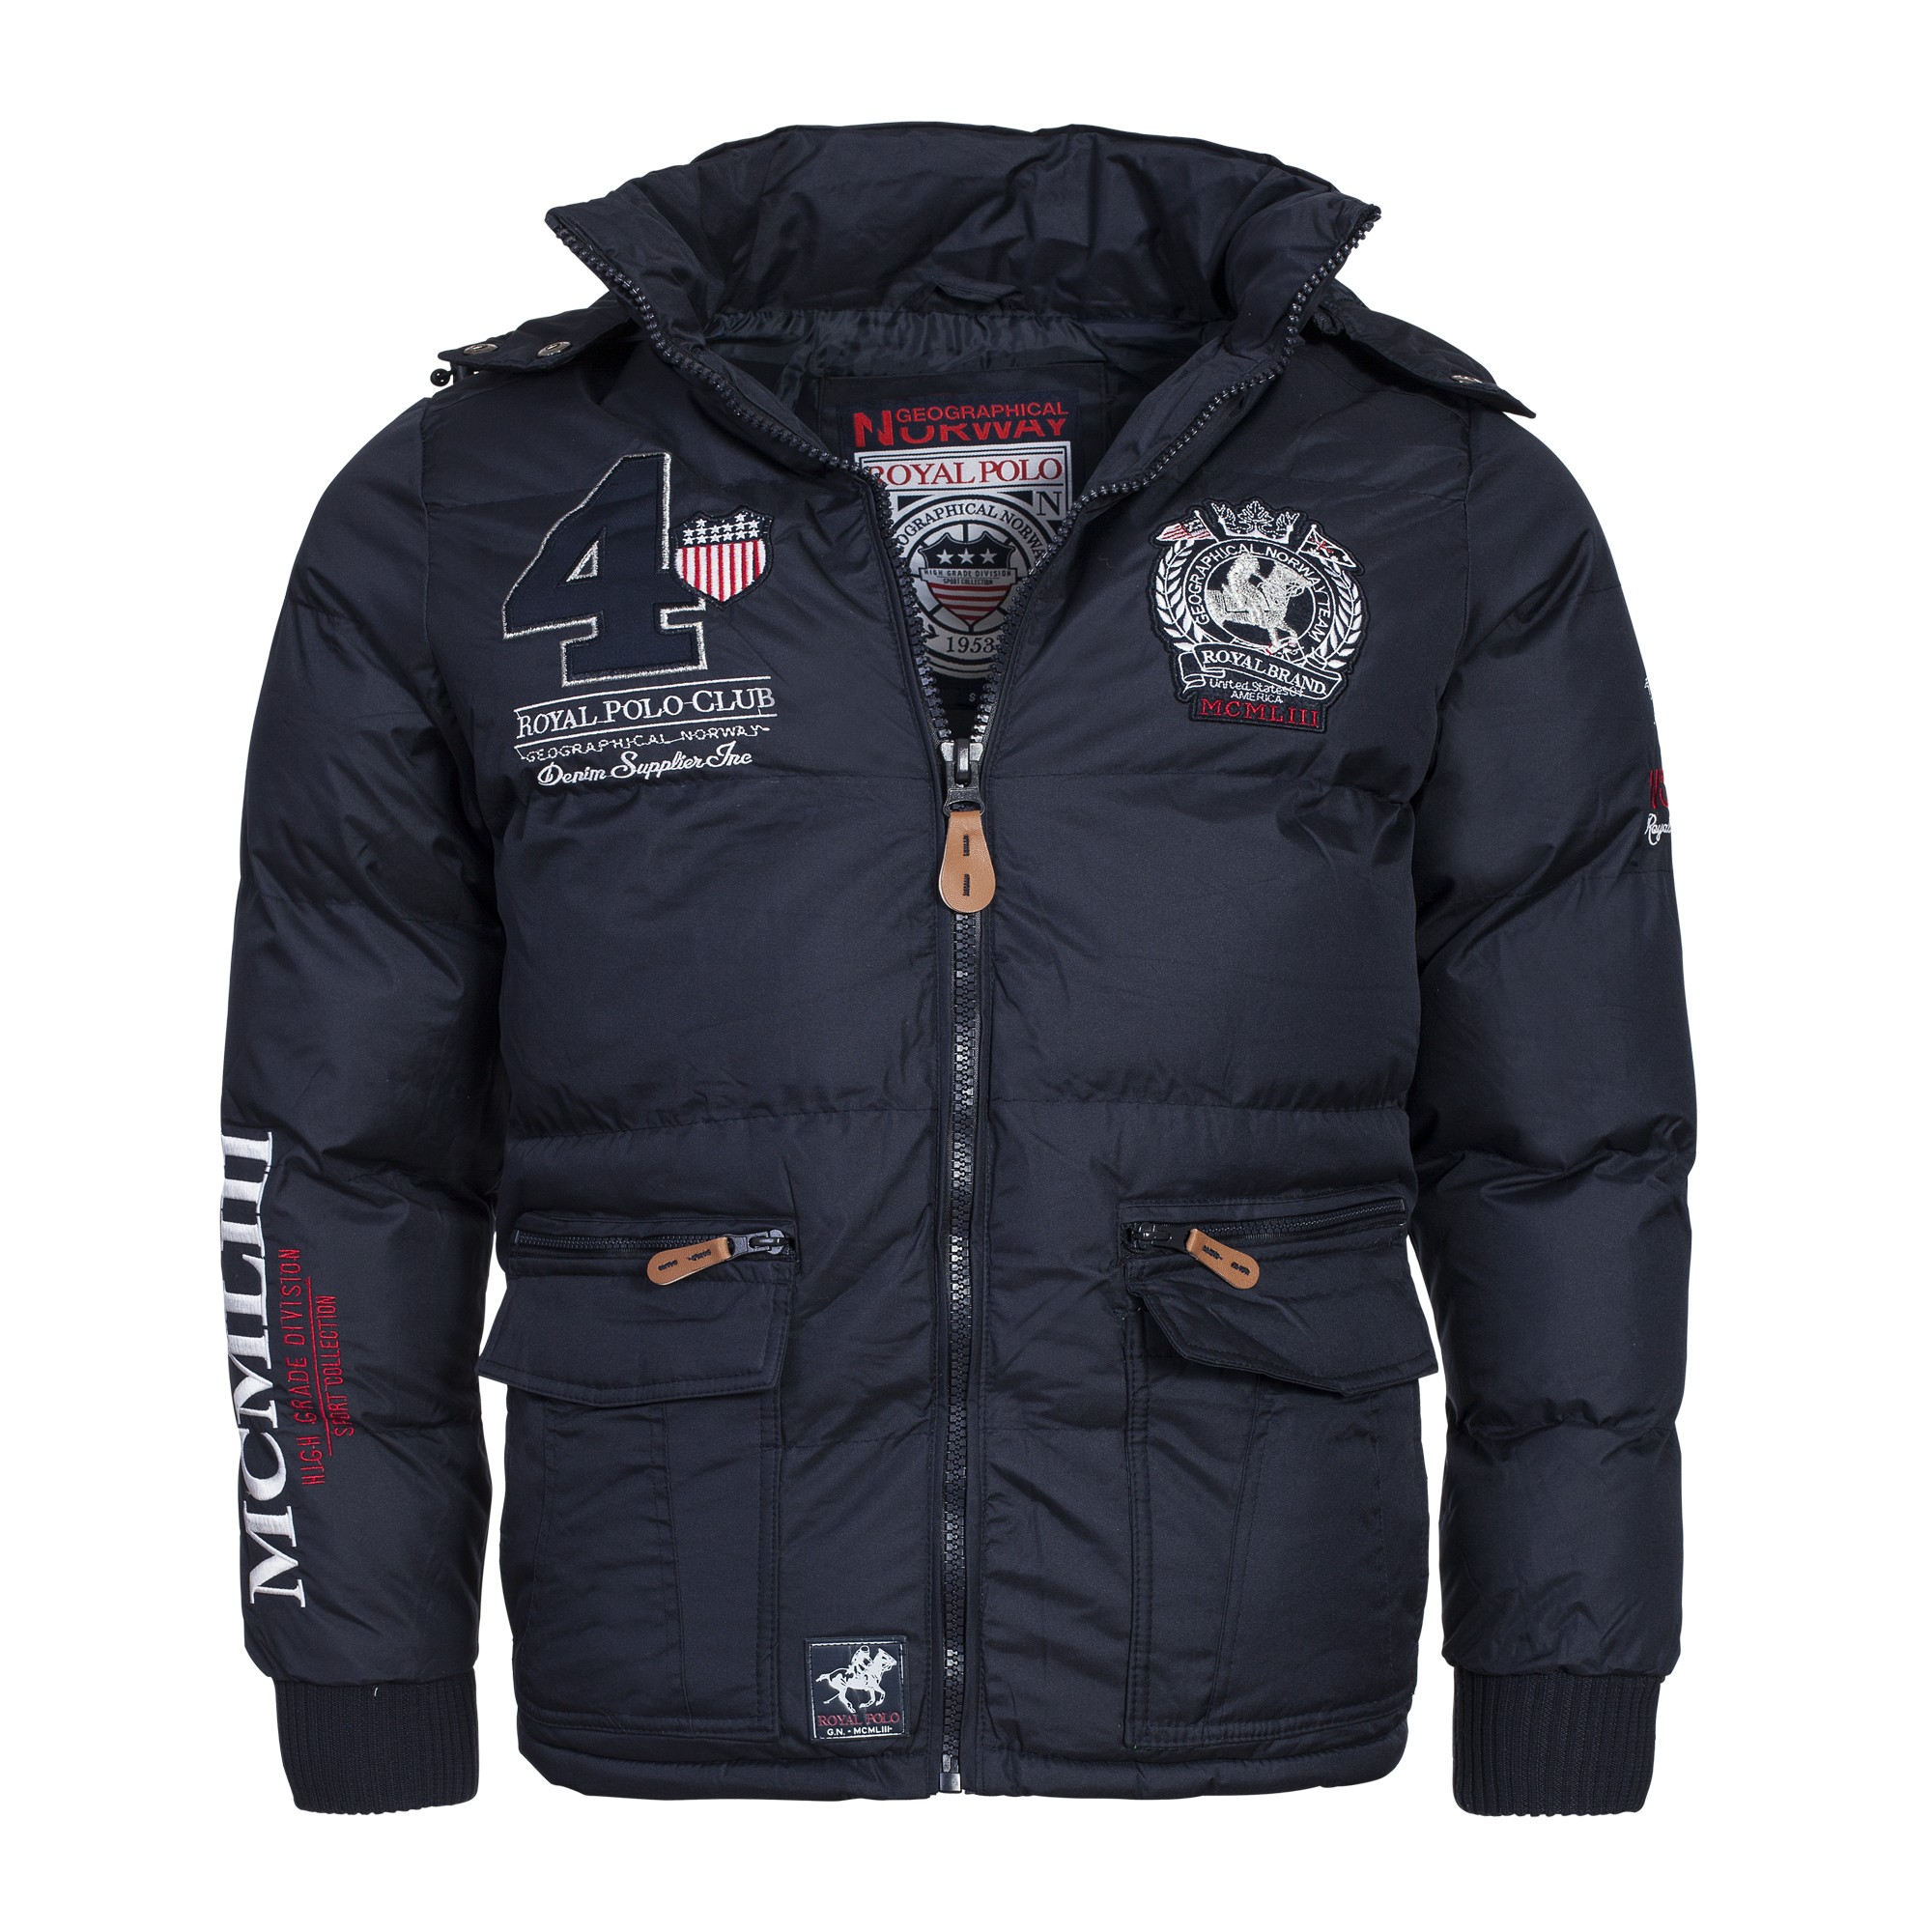 geographical norway cincinatti herren winterjacke jacke. Black Bedroom Furniture Sets. Home Design Ideas